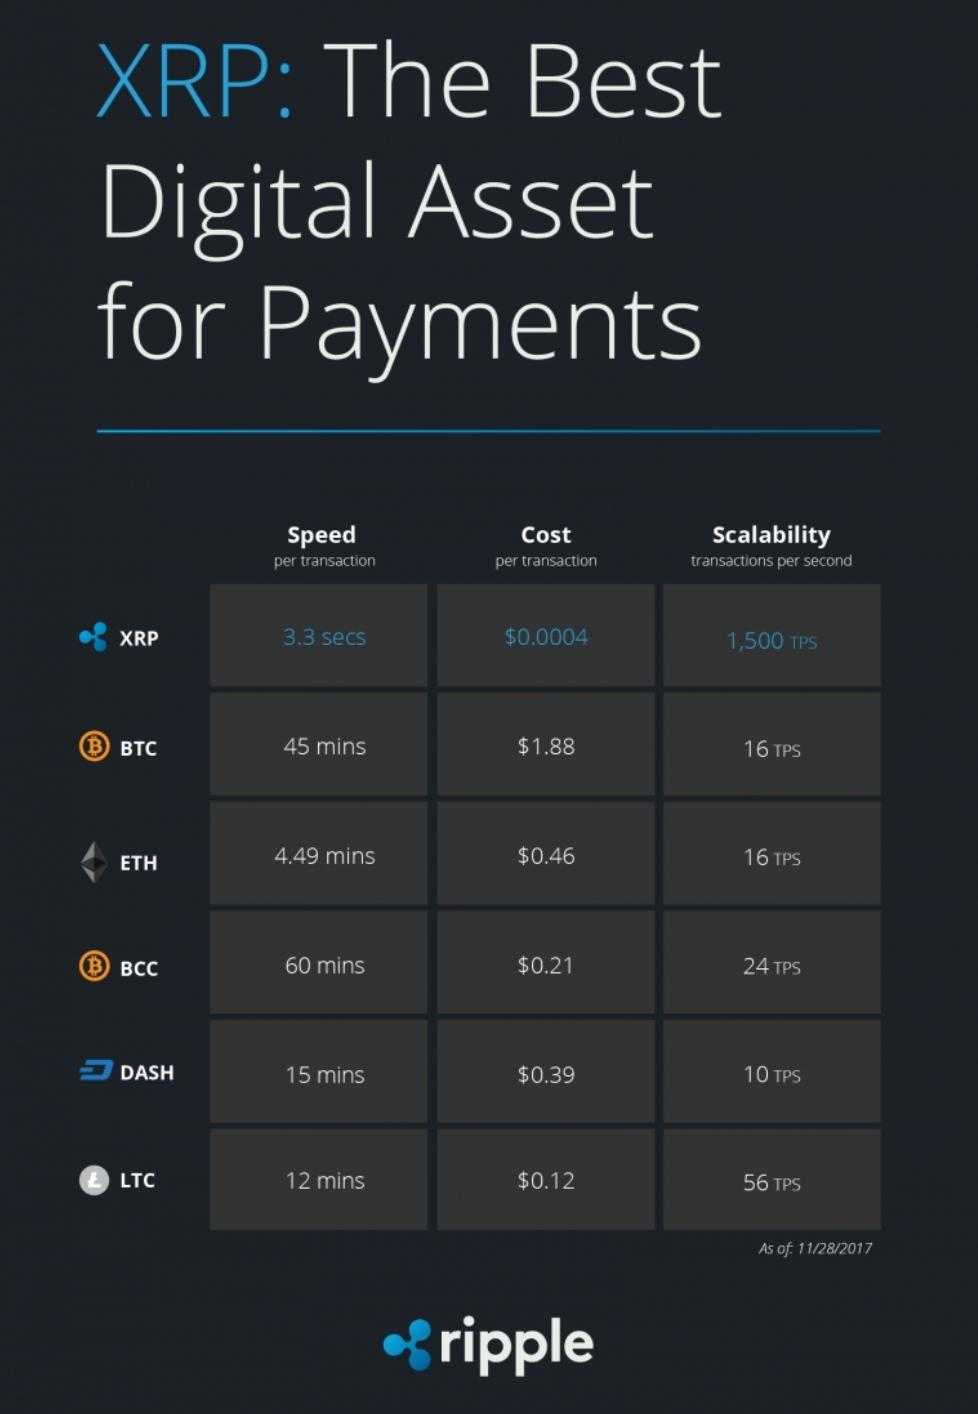 XRP is the best digital asset for payments with faster speeds, lower cost and higher scalability than BTC, ETH, BCC, DASH and LTC